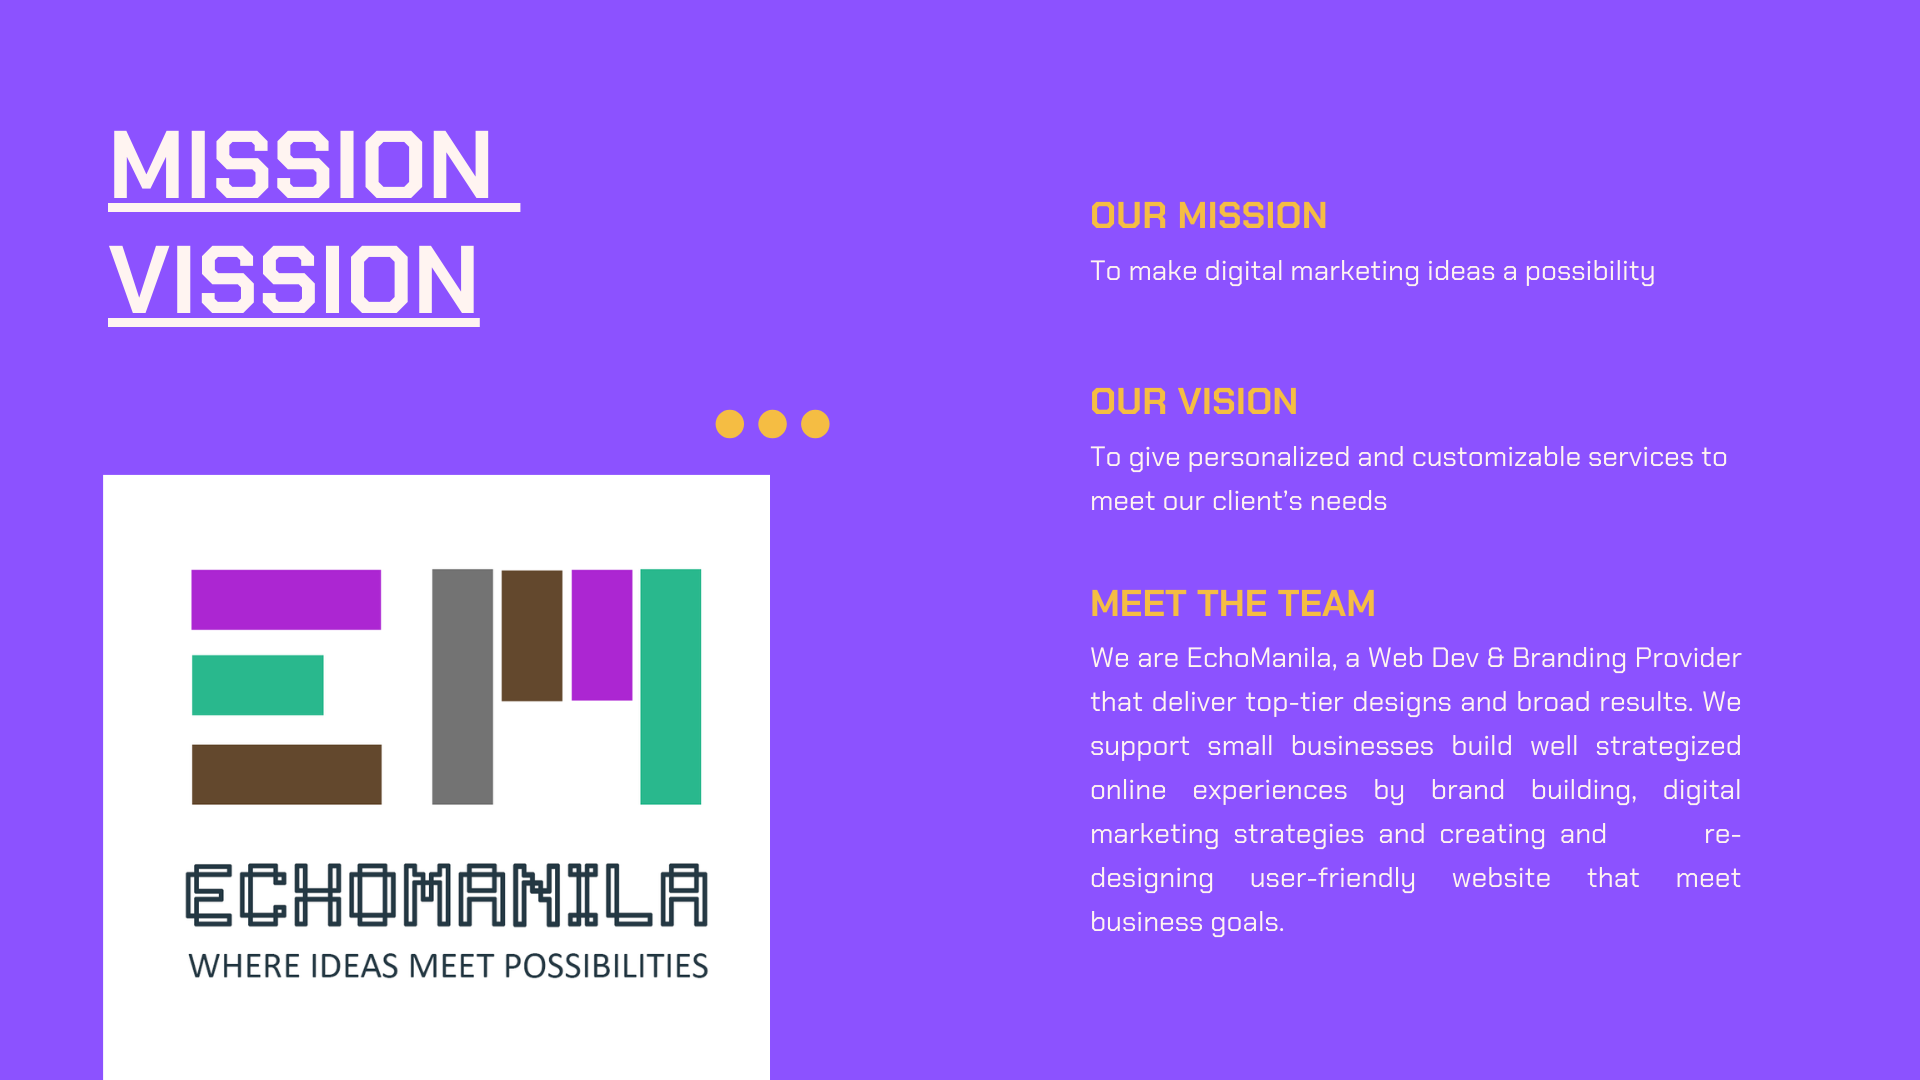 Our Mission To make digital marketing ideas a possibility Our Vision To give personalized and customizable services to meet our client's needs   MEET THE TEAM We are EchoManila, a Web Dev & Branding Provider that deliver top-tier designs and broad results.We support small businesses build well strategized online experiences by brand building, digital marketing strategies and creating and re-designing user-friendly website that meet business goals.